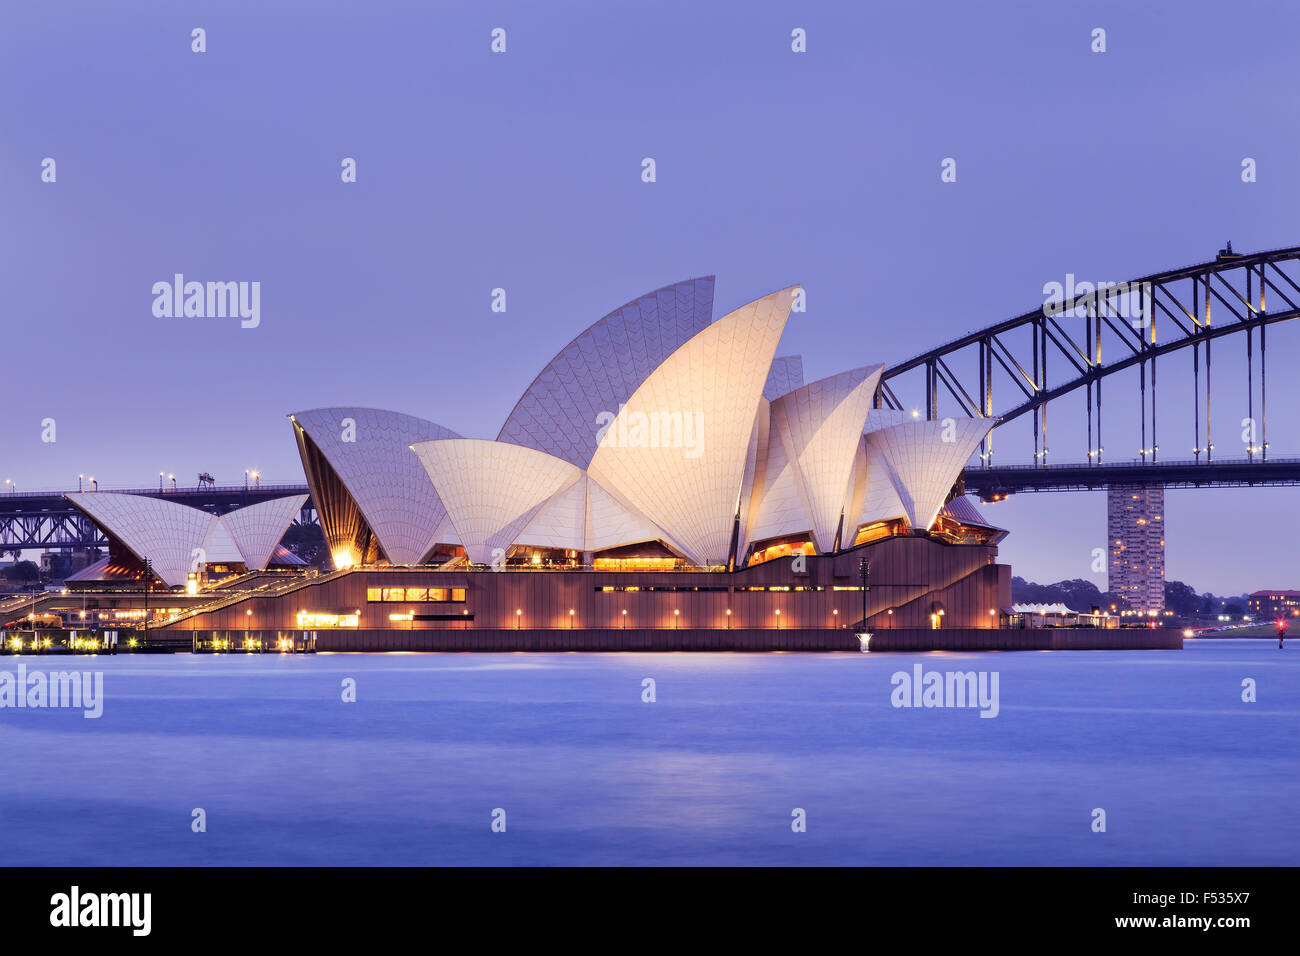 SYDNEY, AUSTRALIA, 10 JULY 2015 - Sydney opera house and Harbour bridge in Sydney at sunset. Iconic and world famous - Stock Image